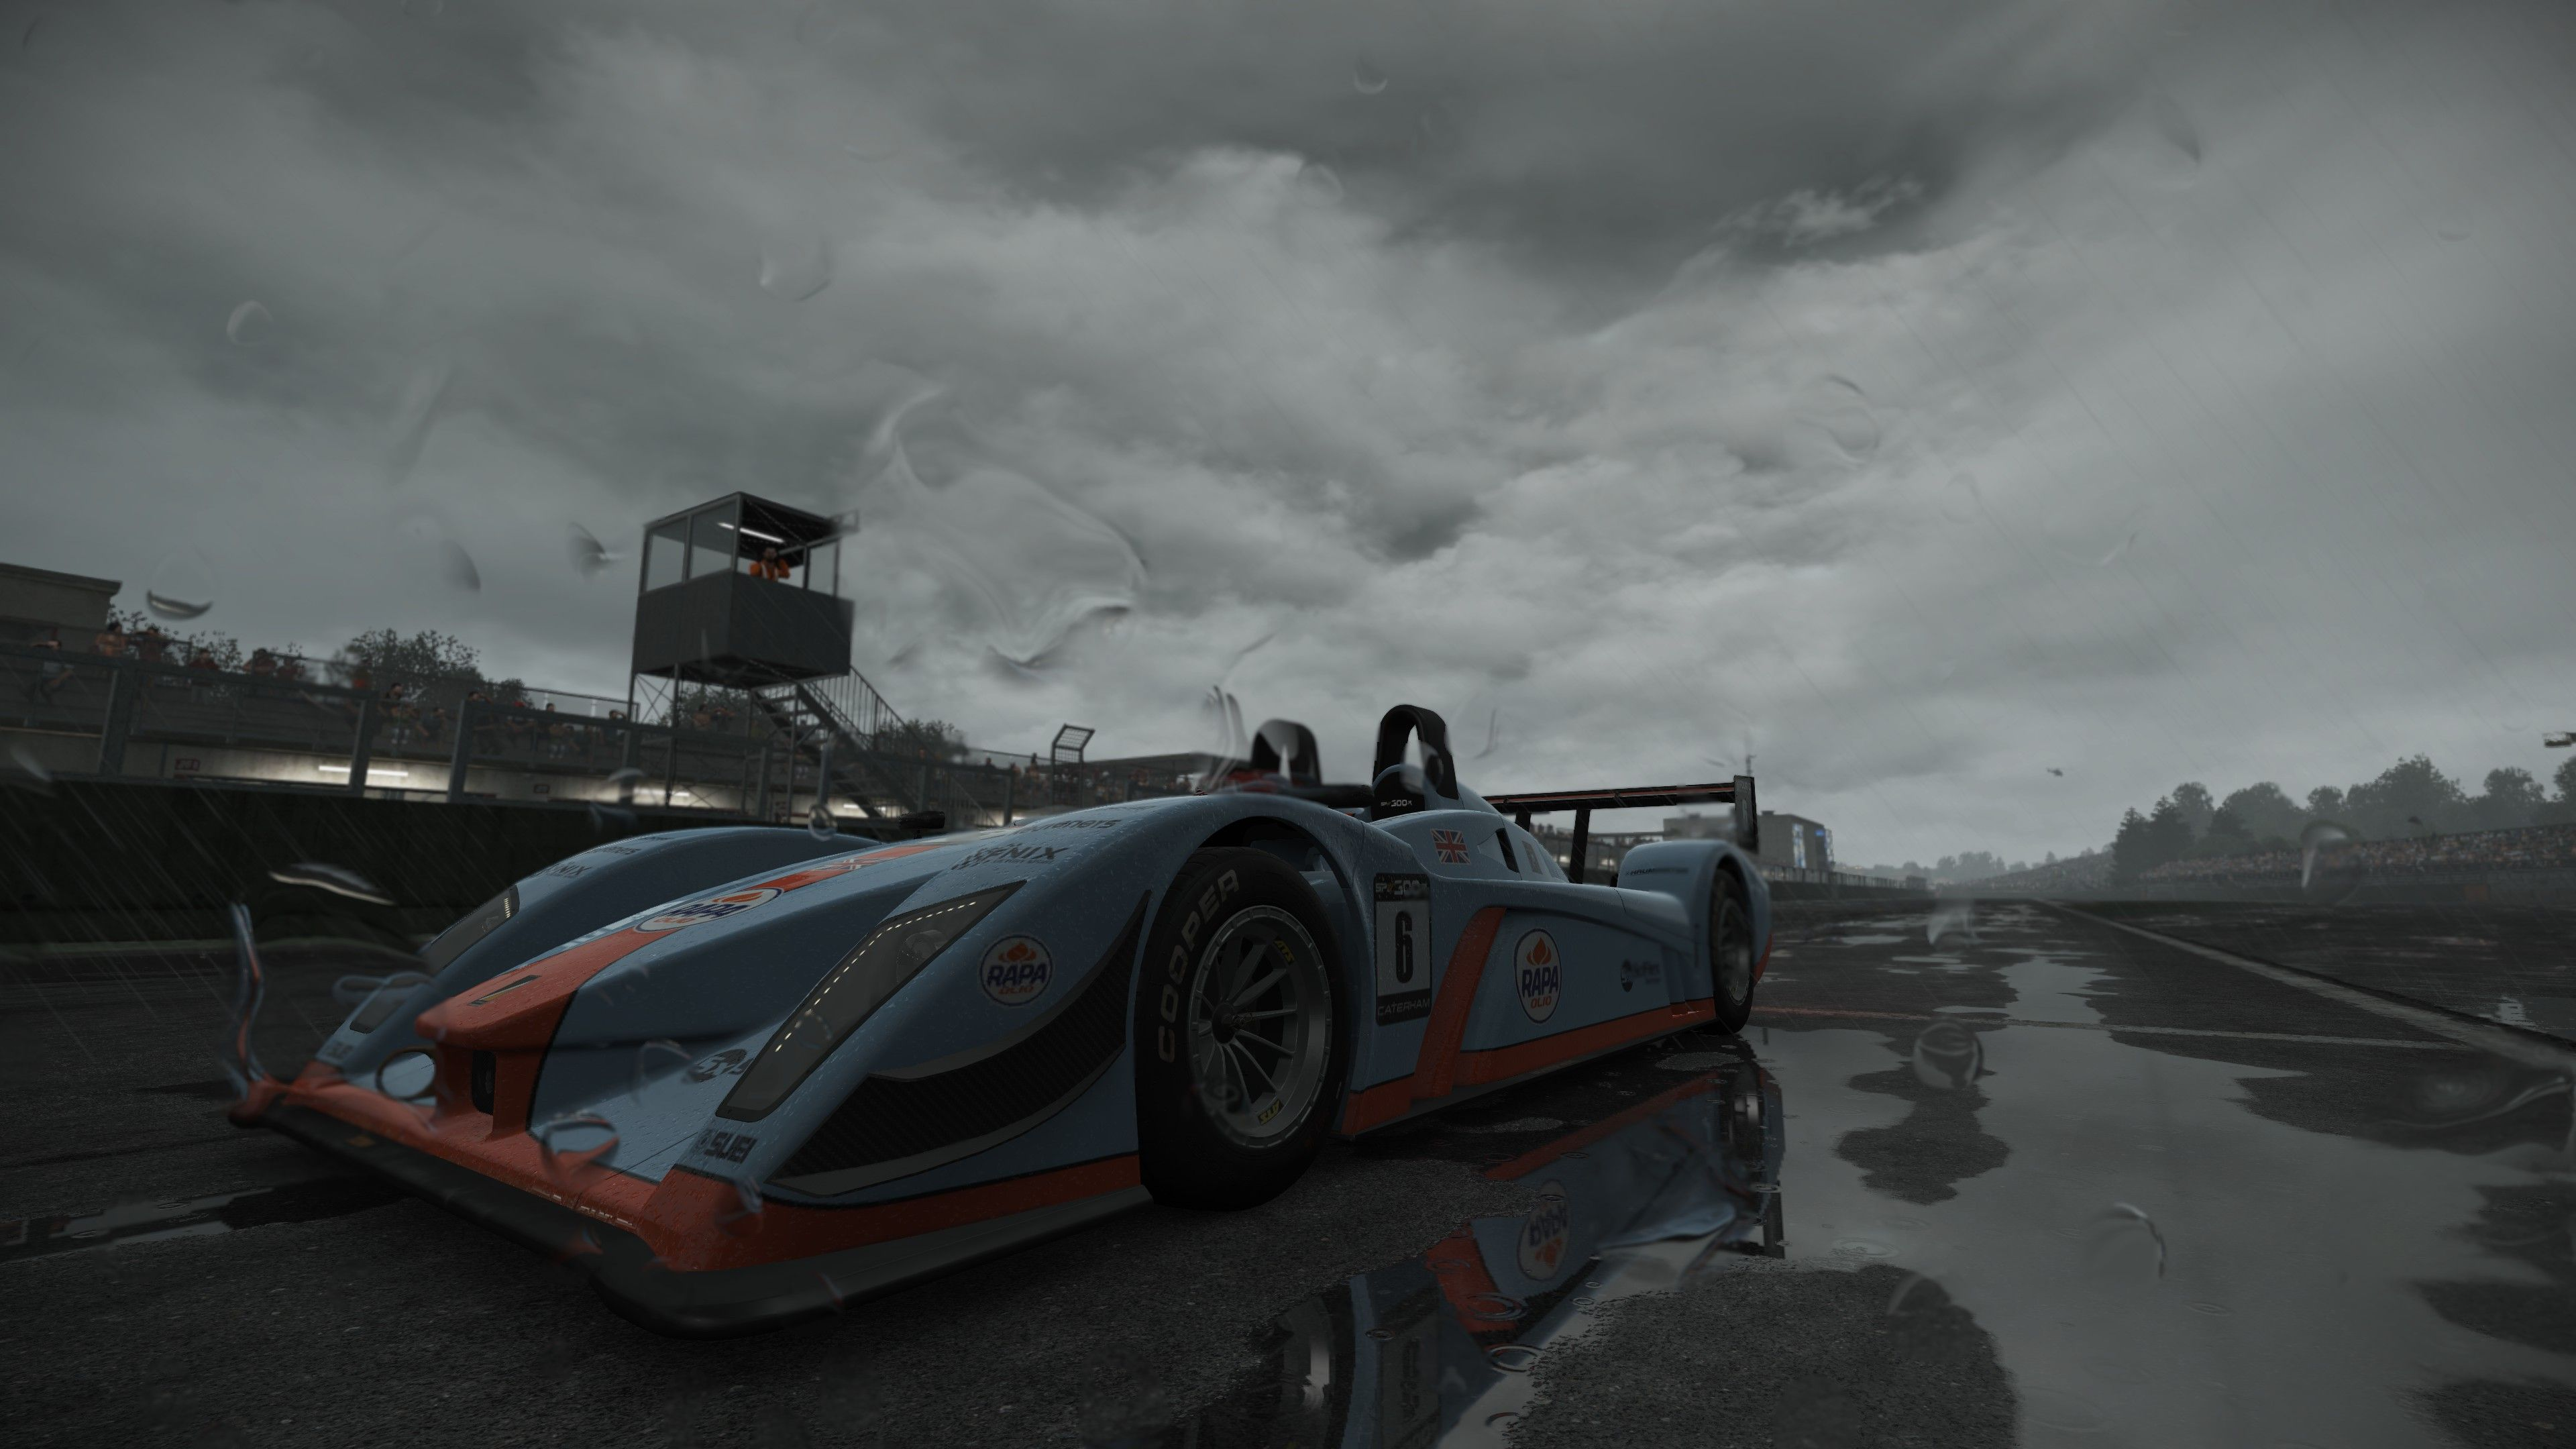 Project cars 4k wallpapers top free project cars 4k - Project cars 4k wallpaper ...